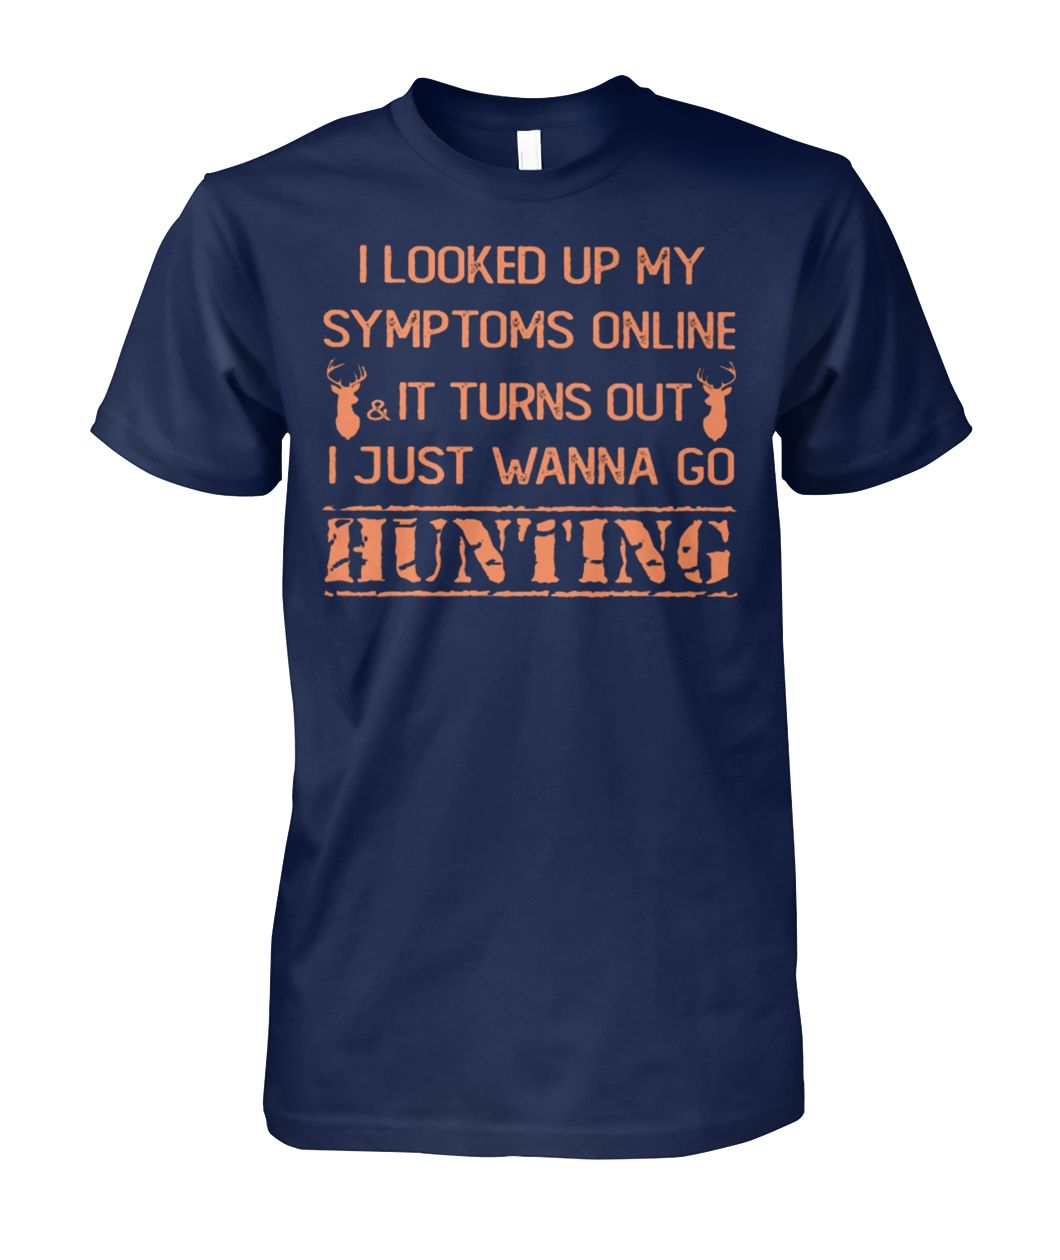 I looked up my symptoms online it turns out I just wanna go hunting deer unisex cotton tee